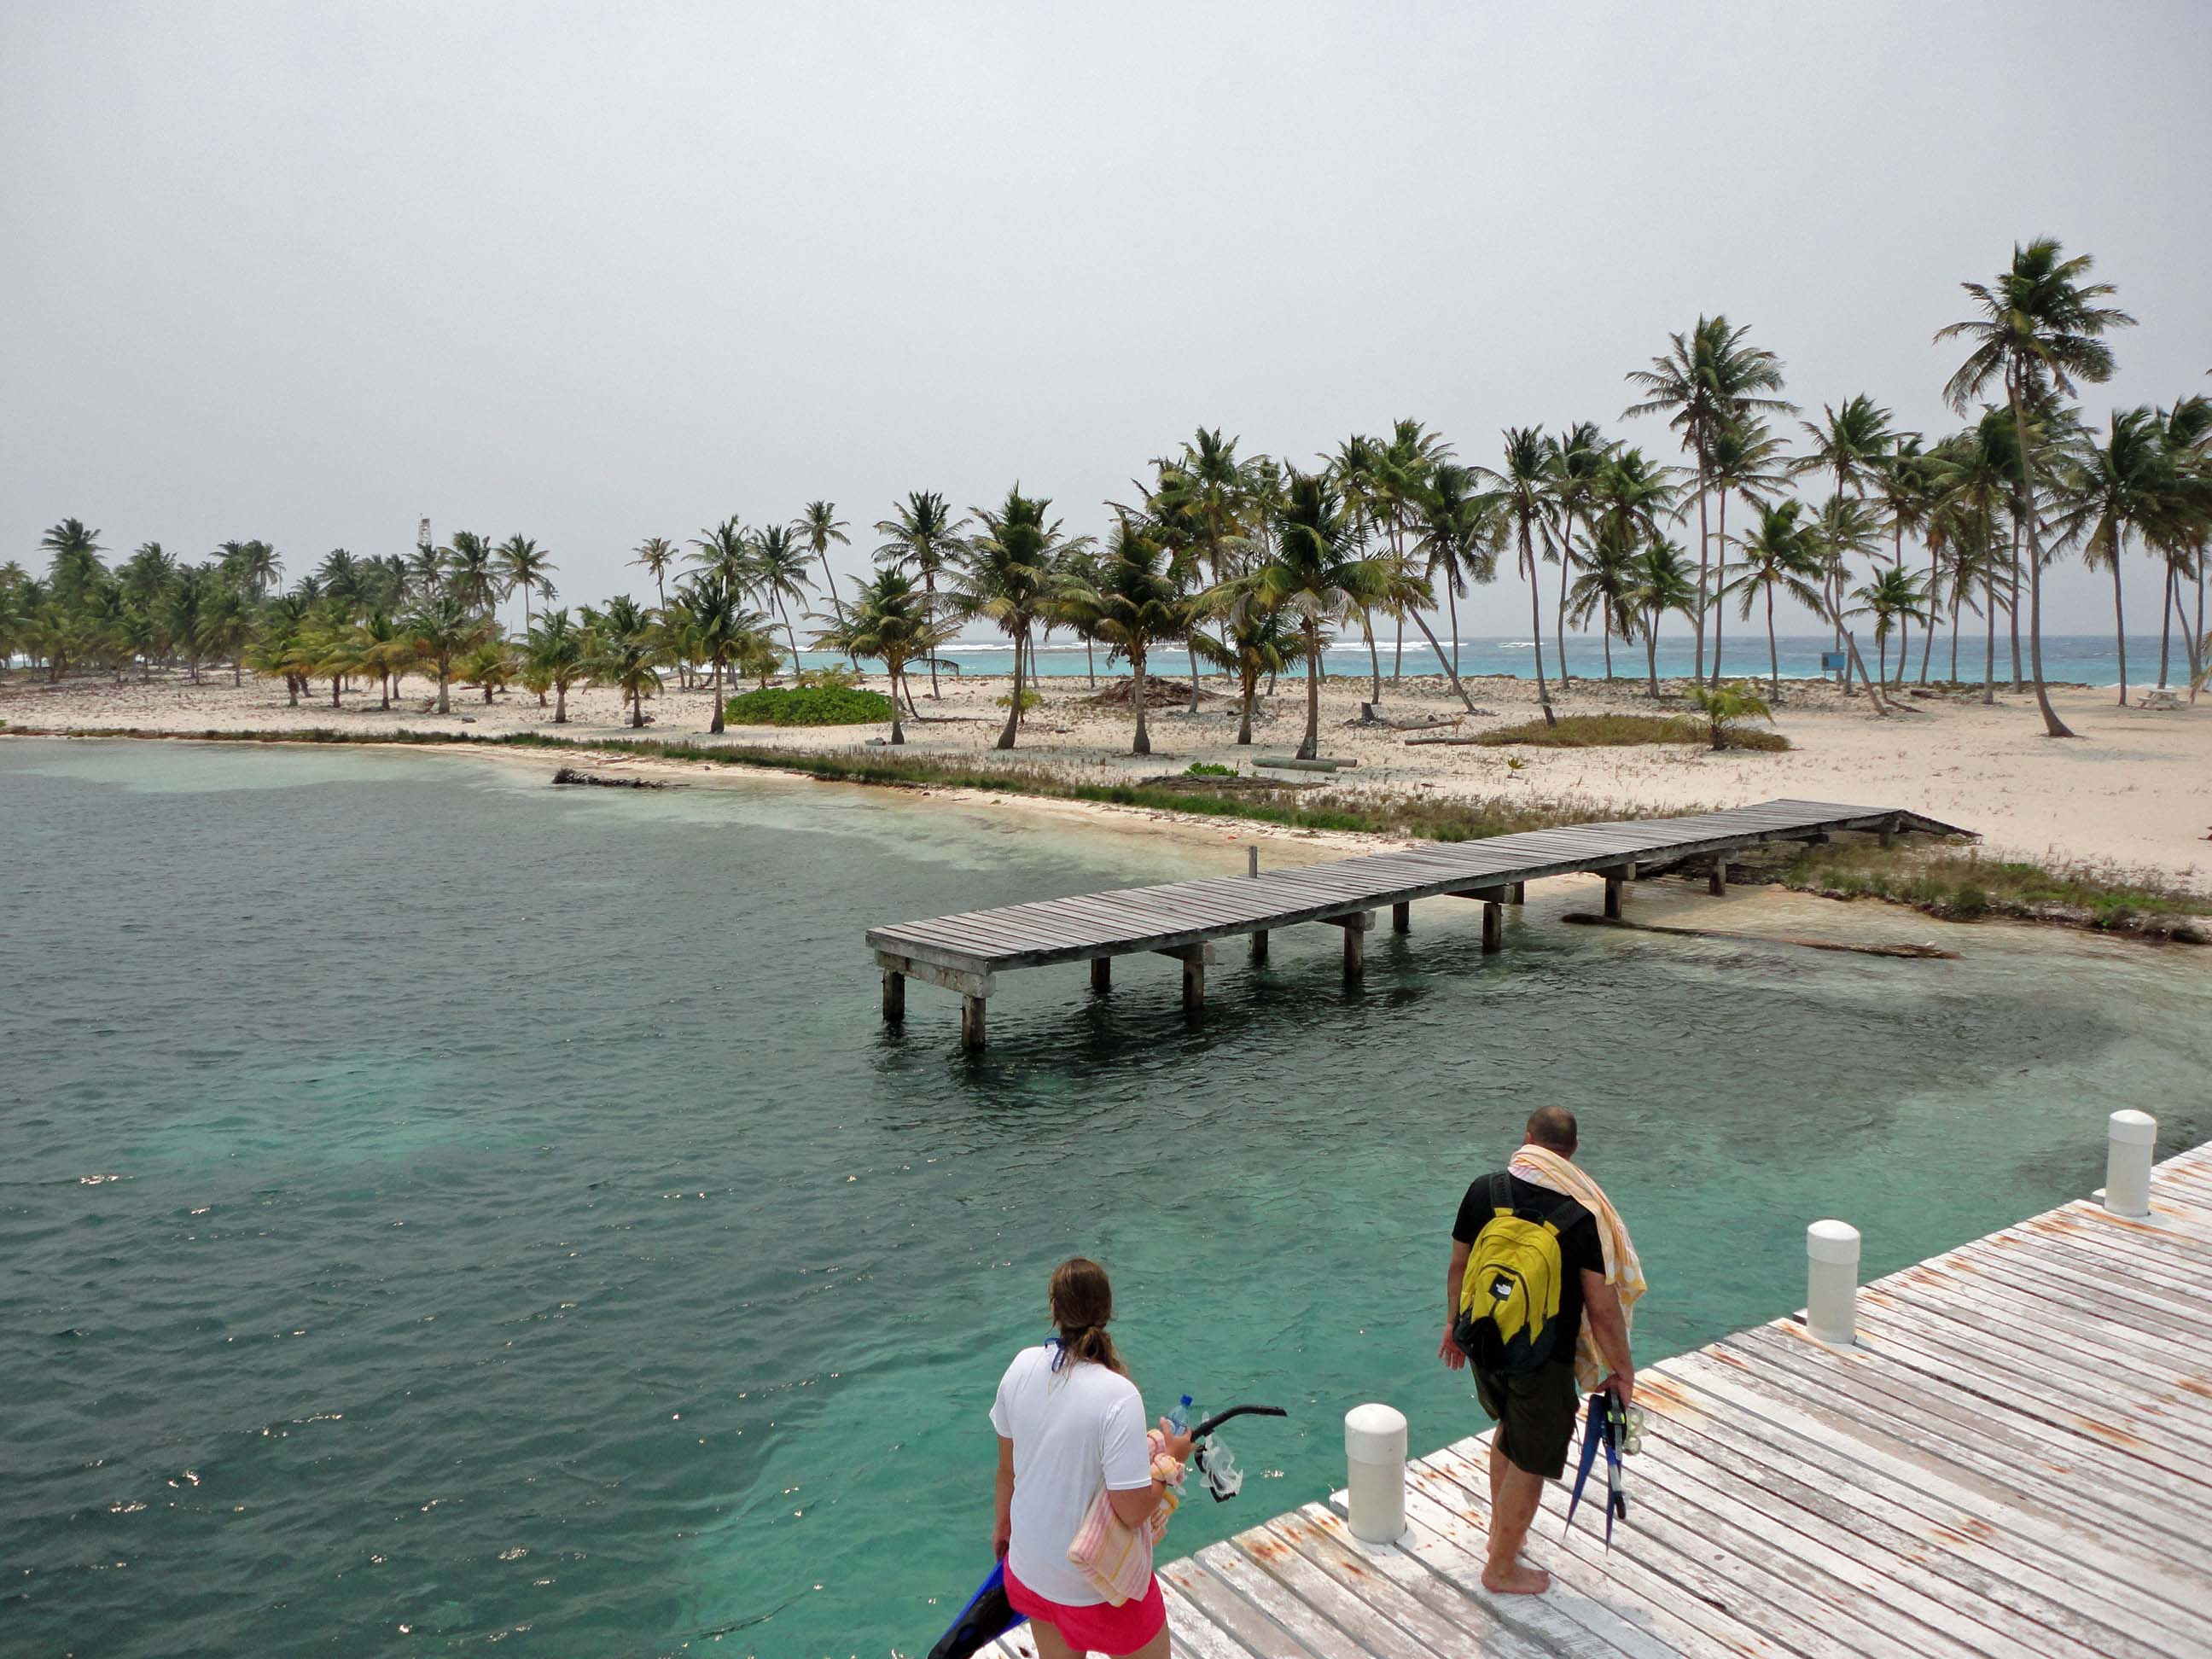 Half Moon Caye dock and island view